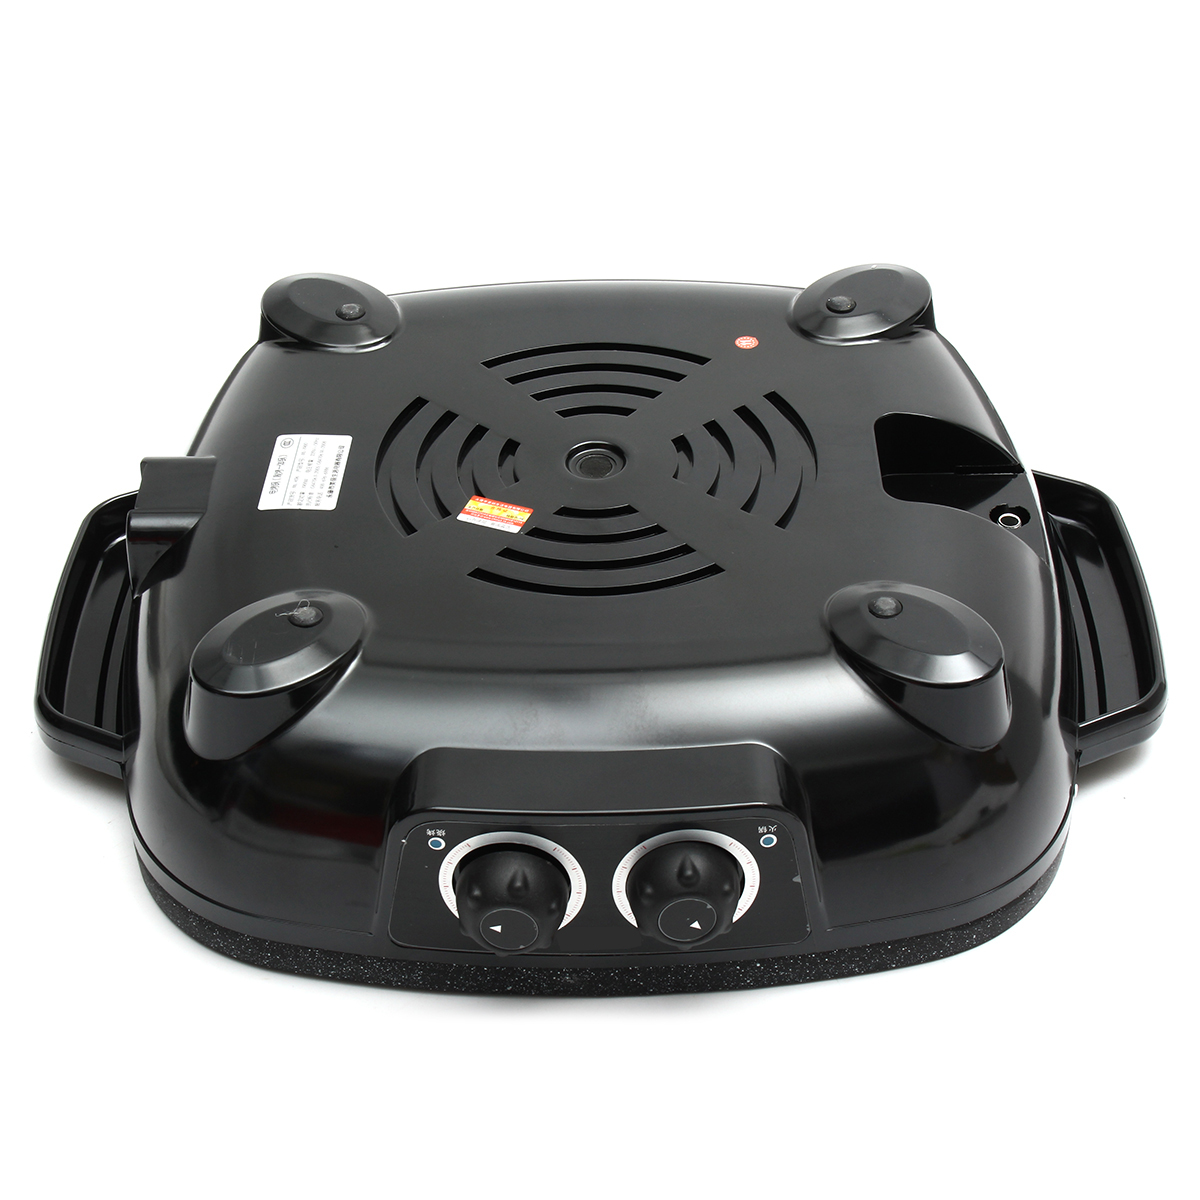 220V 1900W Electric Hot Pot Pan Oven Domestic Smokeless Nonstick Barbecue BBQ Grill